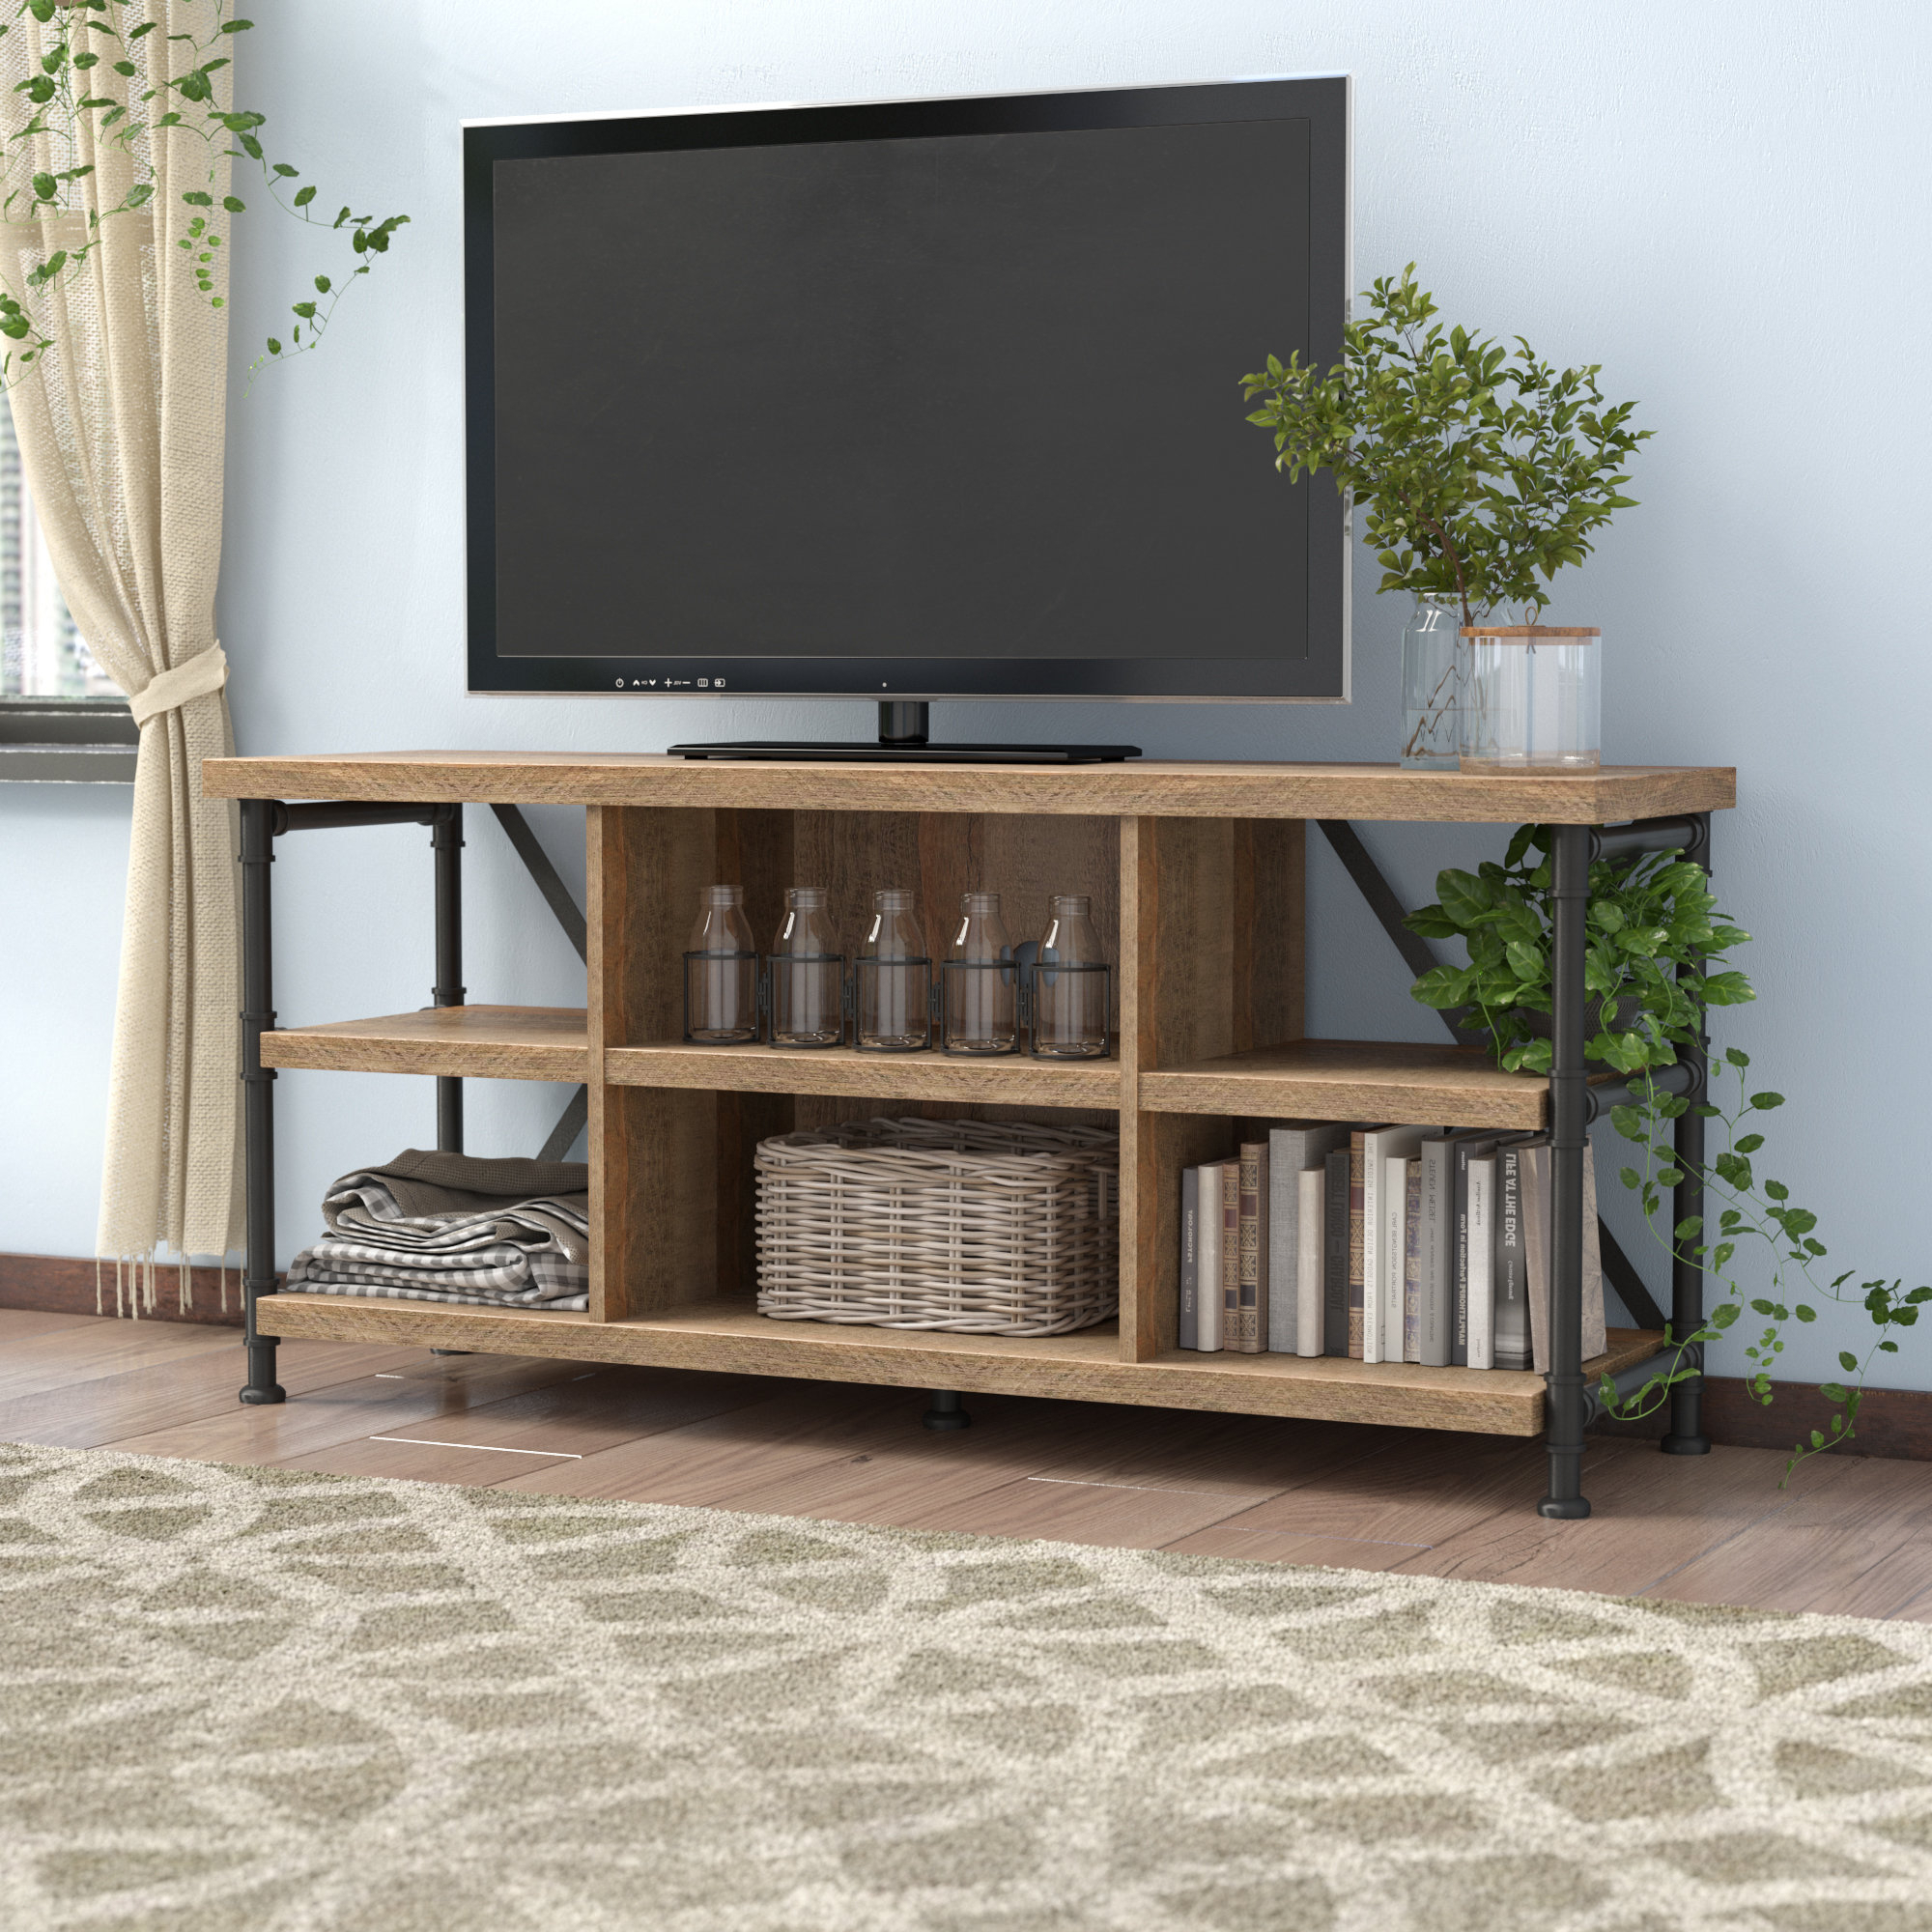 Edwin Black 64 Inch Tv Stands Intended For Popular 60 64 Inch Tv Stands (View 9 of 20)